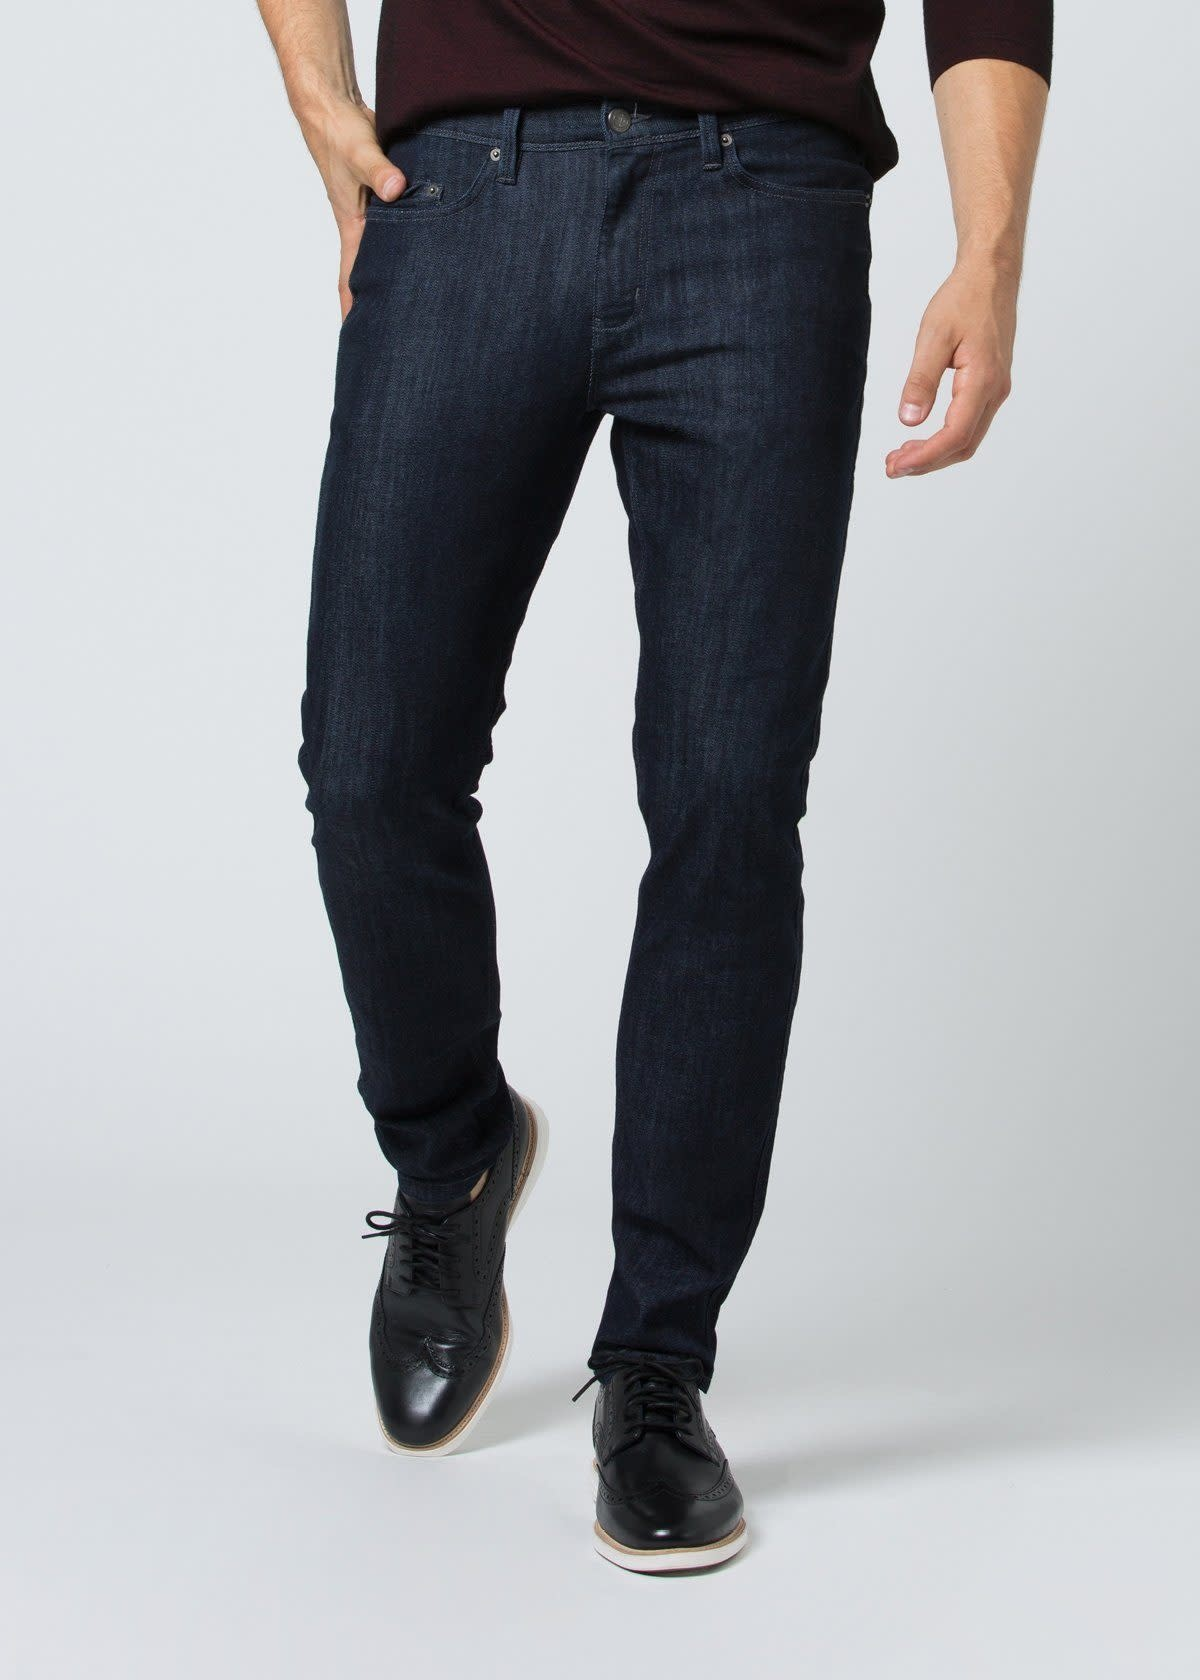 DUER Performance Denim Slim-4